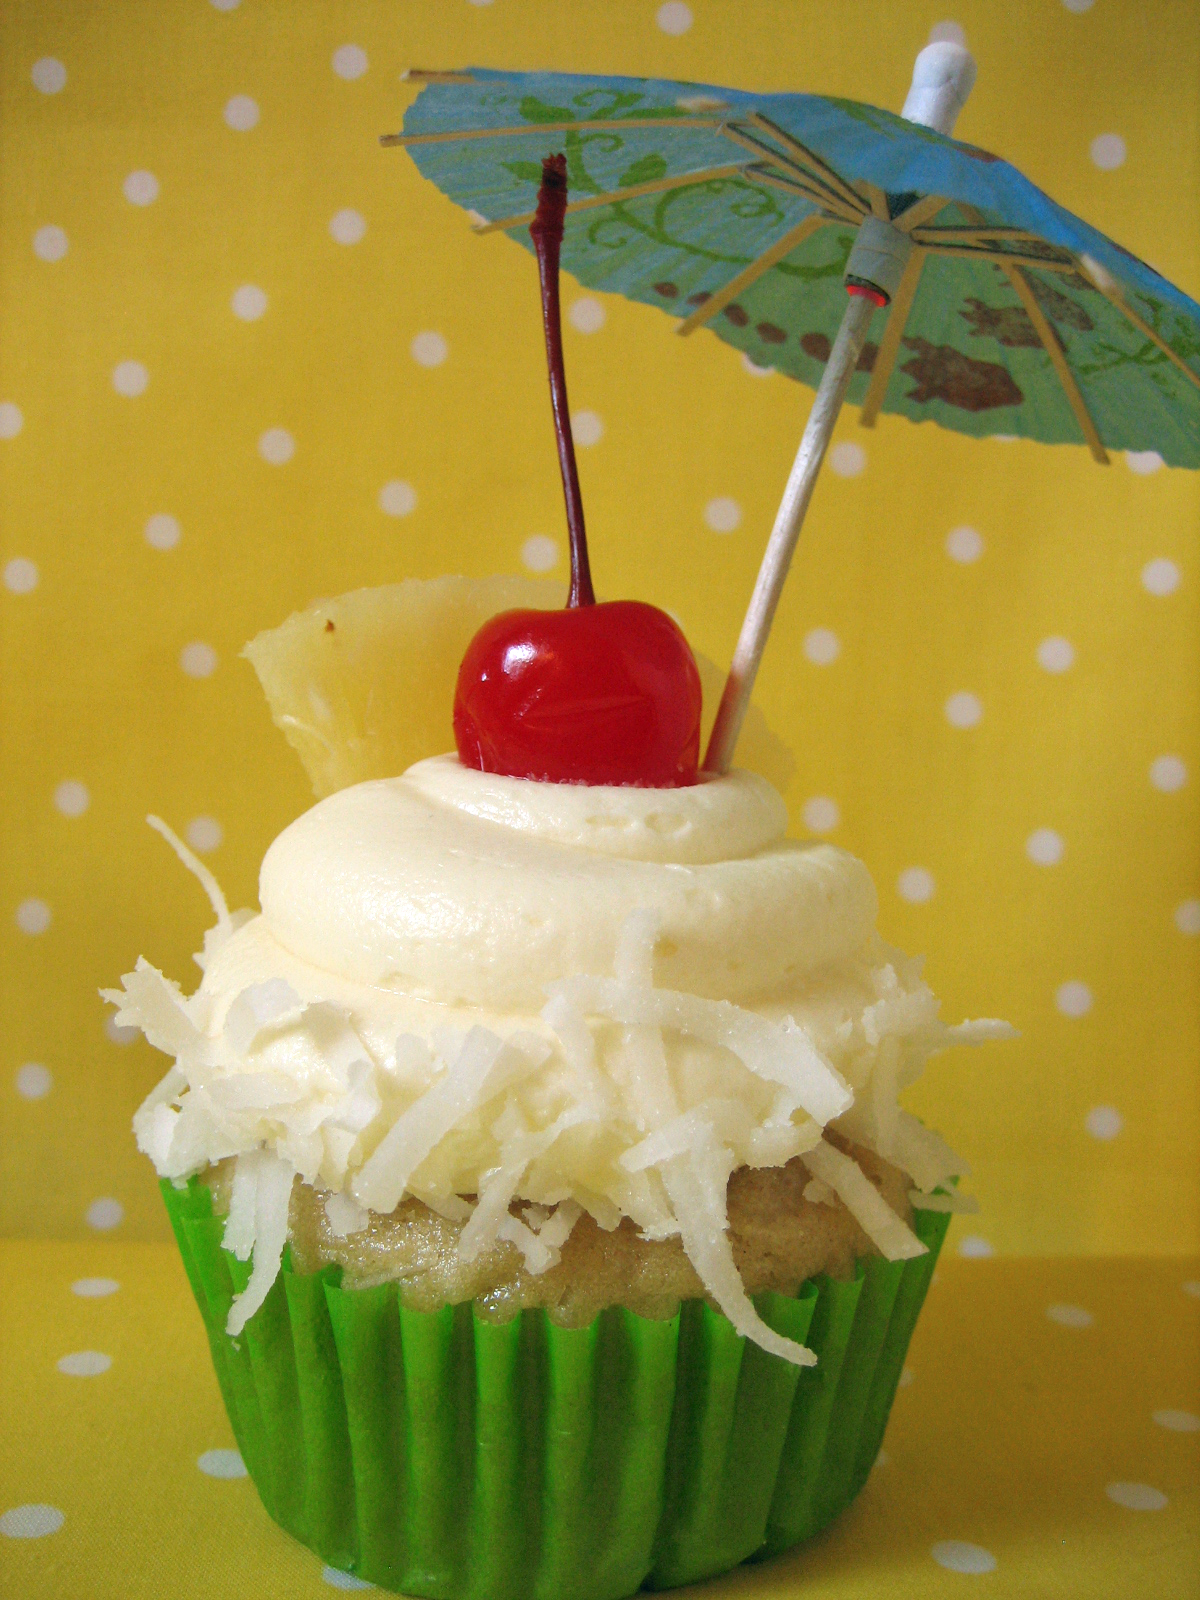 ... you than a pina colada cupcake while you are lounging pool side